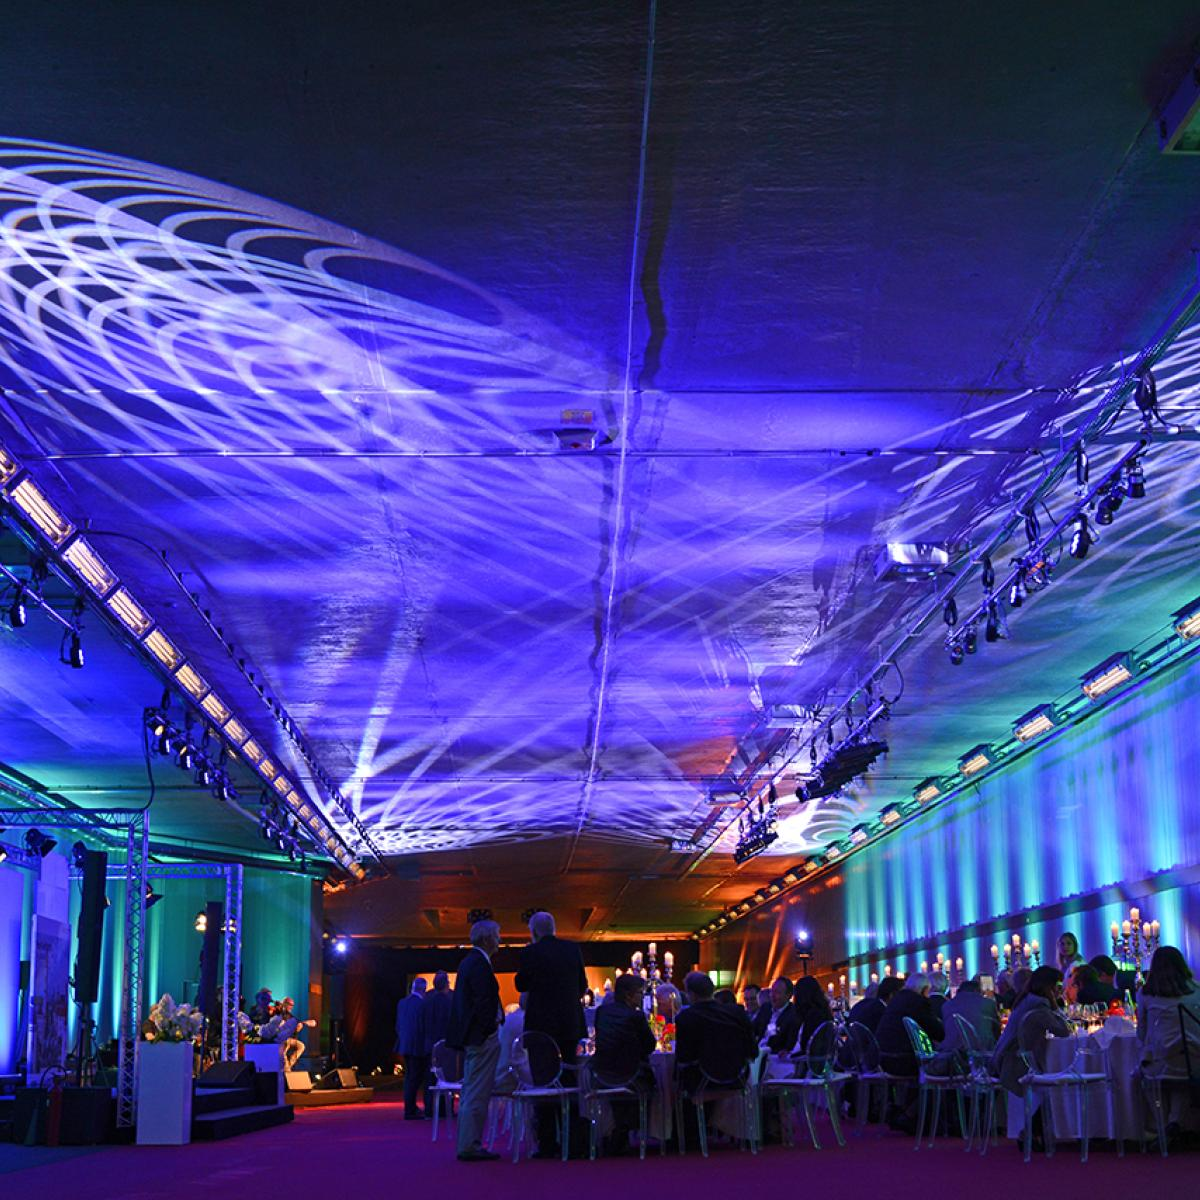 Gala lighting setup within a tunnel in Munich